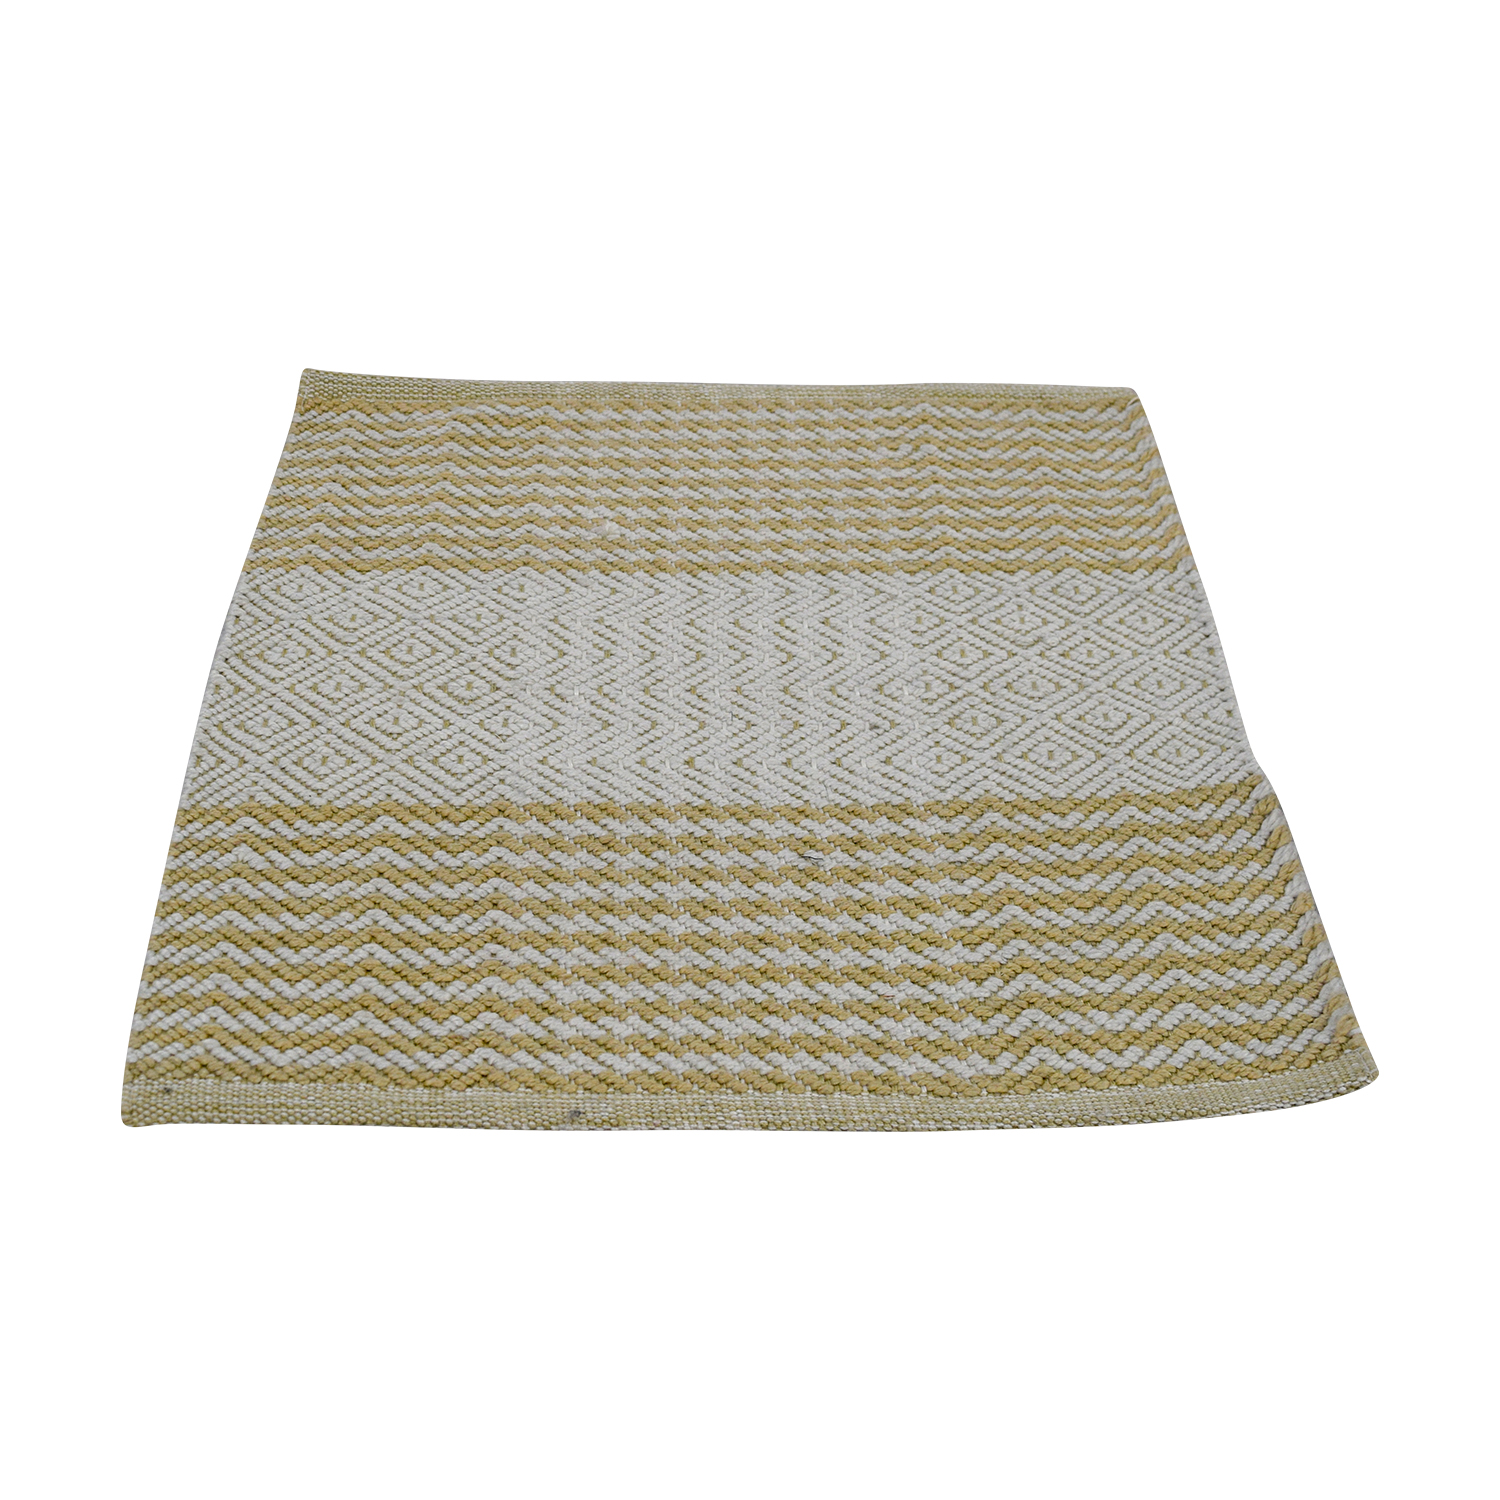 Obeetee 2x2 Cream and Beige Rug sale